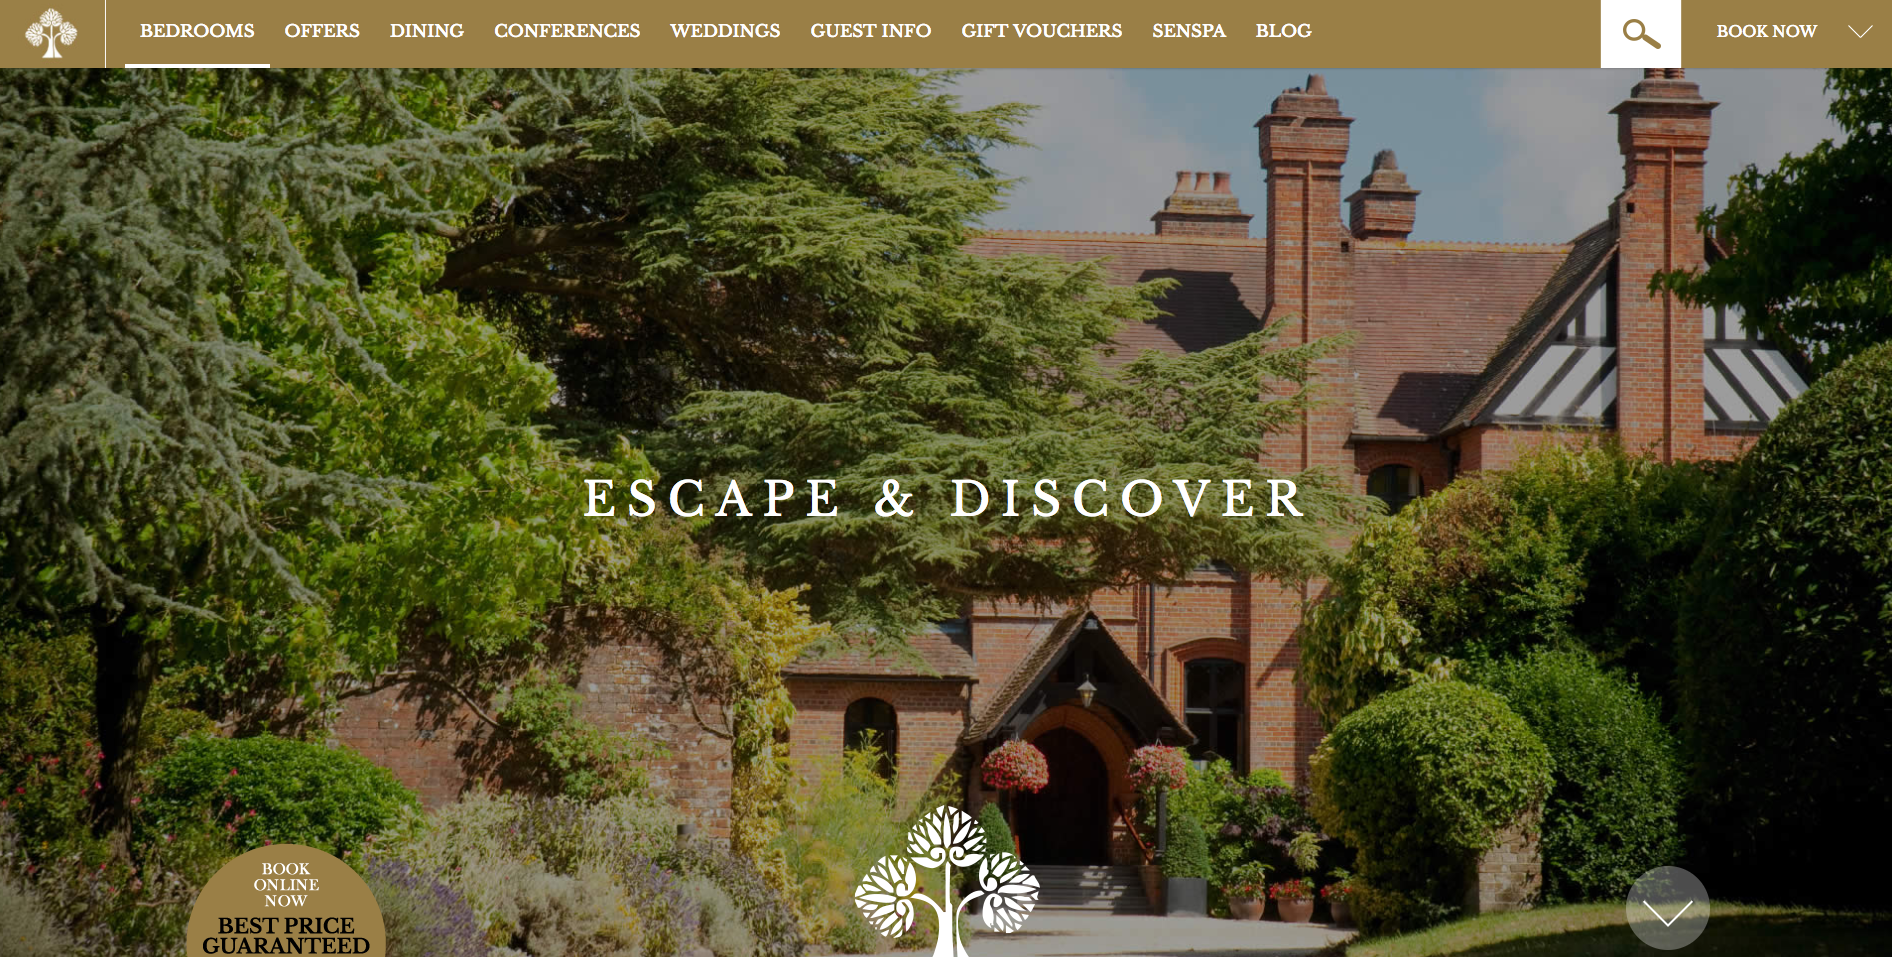 Careys Manor Home Page.png